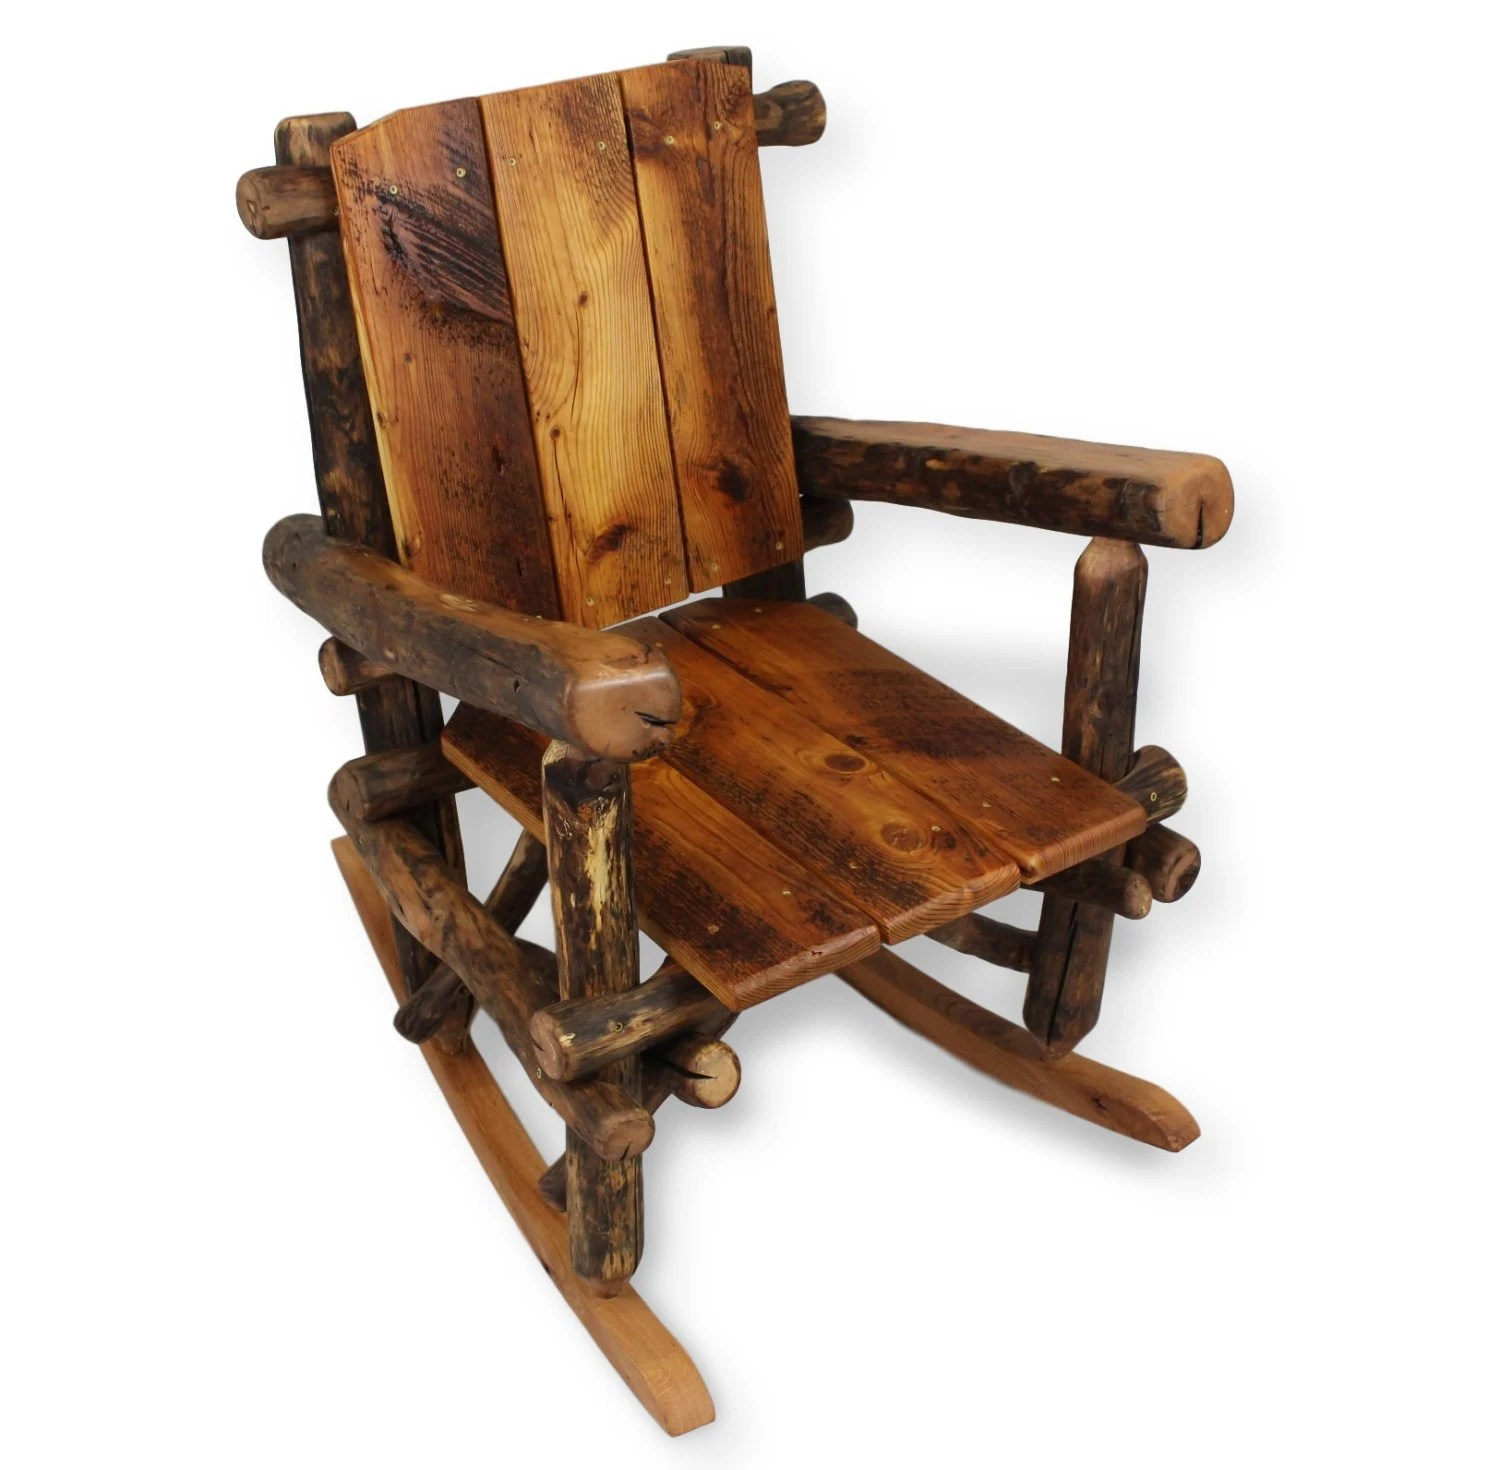 Rustic Wood Chairs Rustic Rocking Chair Reclaimed Wood Chair Porch Furniture